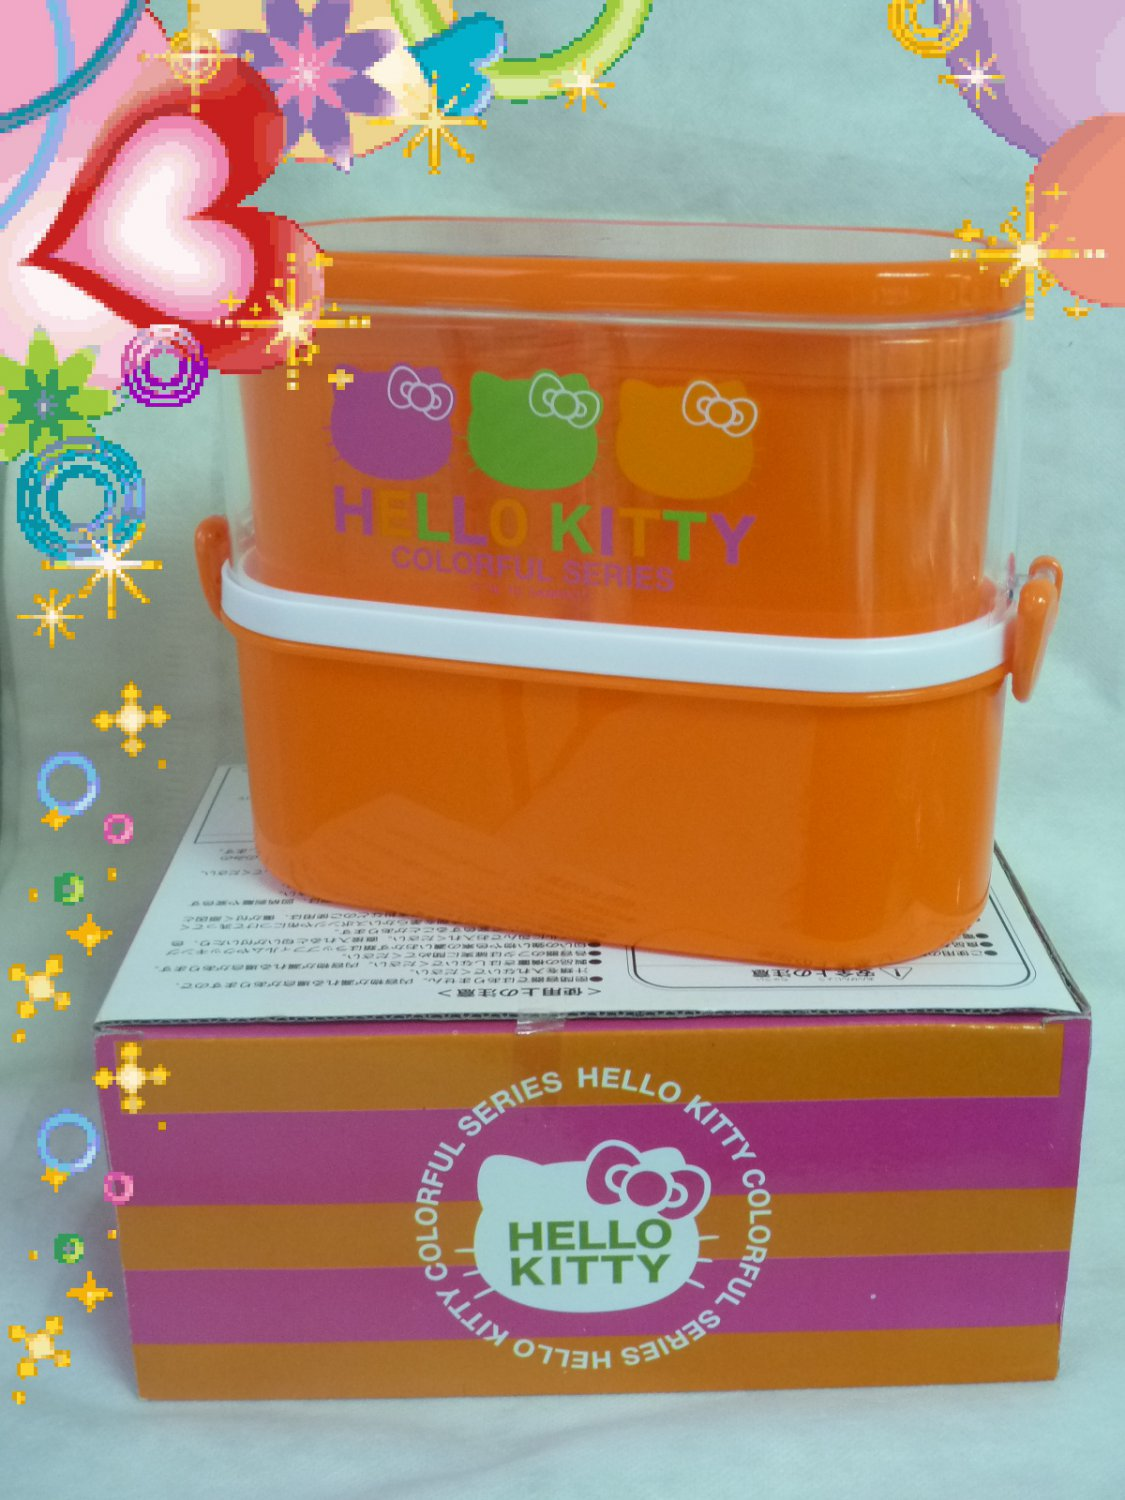 Sanrio Hello Kitty Bento Lunchbox Food Container set spoon fork case OC1